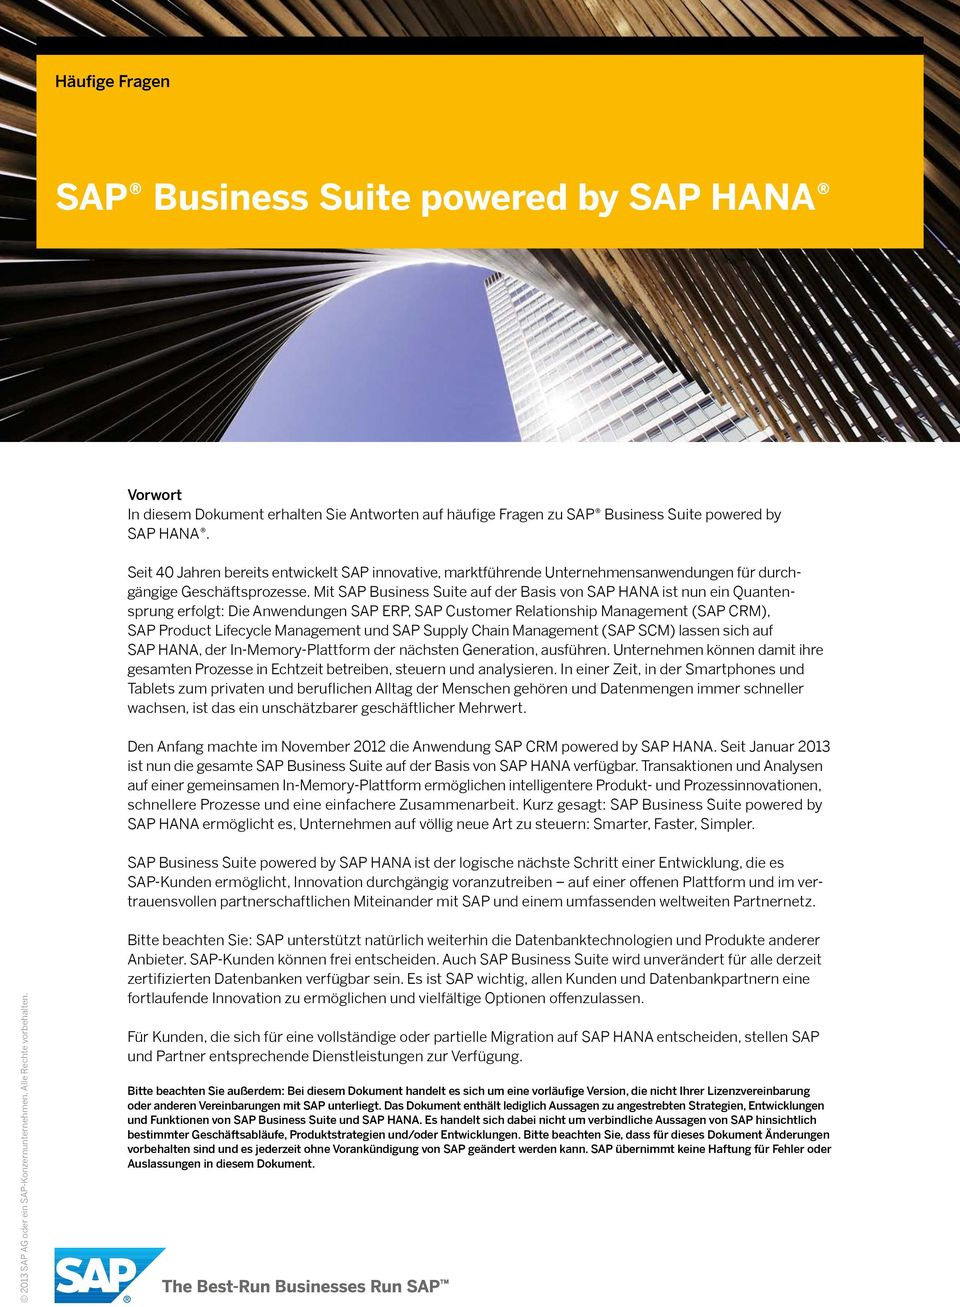 Mit SAP Business Suite auf der Basis von SAP HANA ist nun ein Quantensprung erfolgt: Die Anwendungen SAP ERP, SAP Customer Relationship Management (SAP CRM), SAP Product Lifecycle Management und SAP